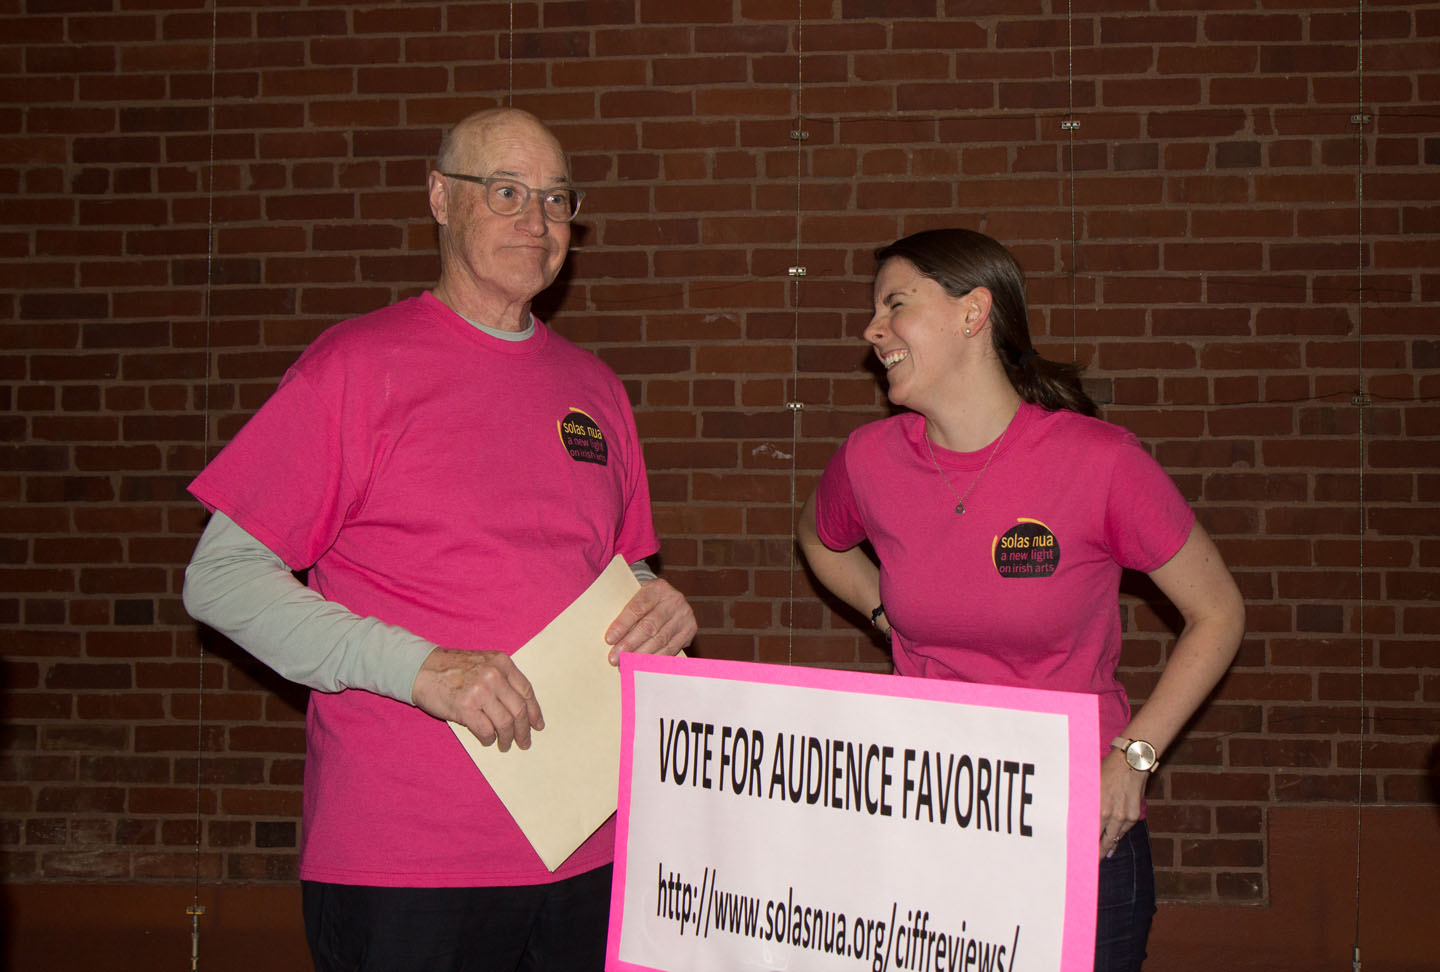 CIFF Co-Director Mike Kerlin and Volunteer Coordinator Norah Quinn urge audiences to vote after each film.